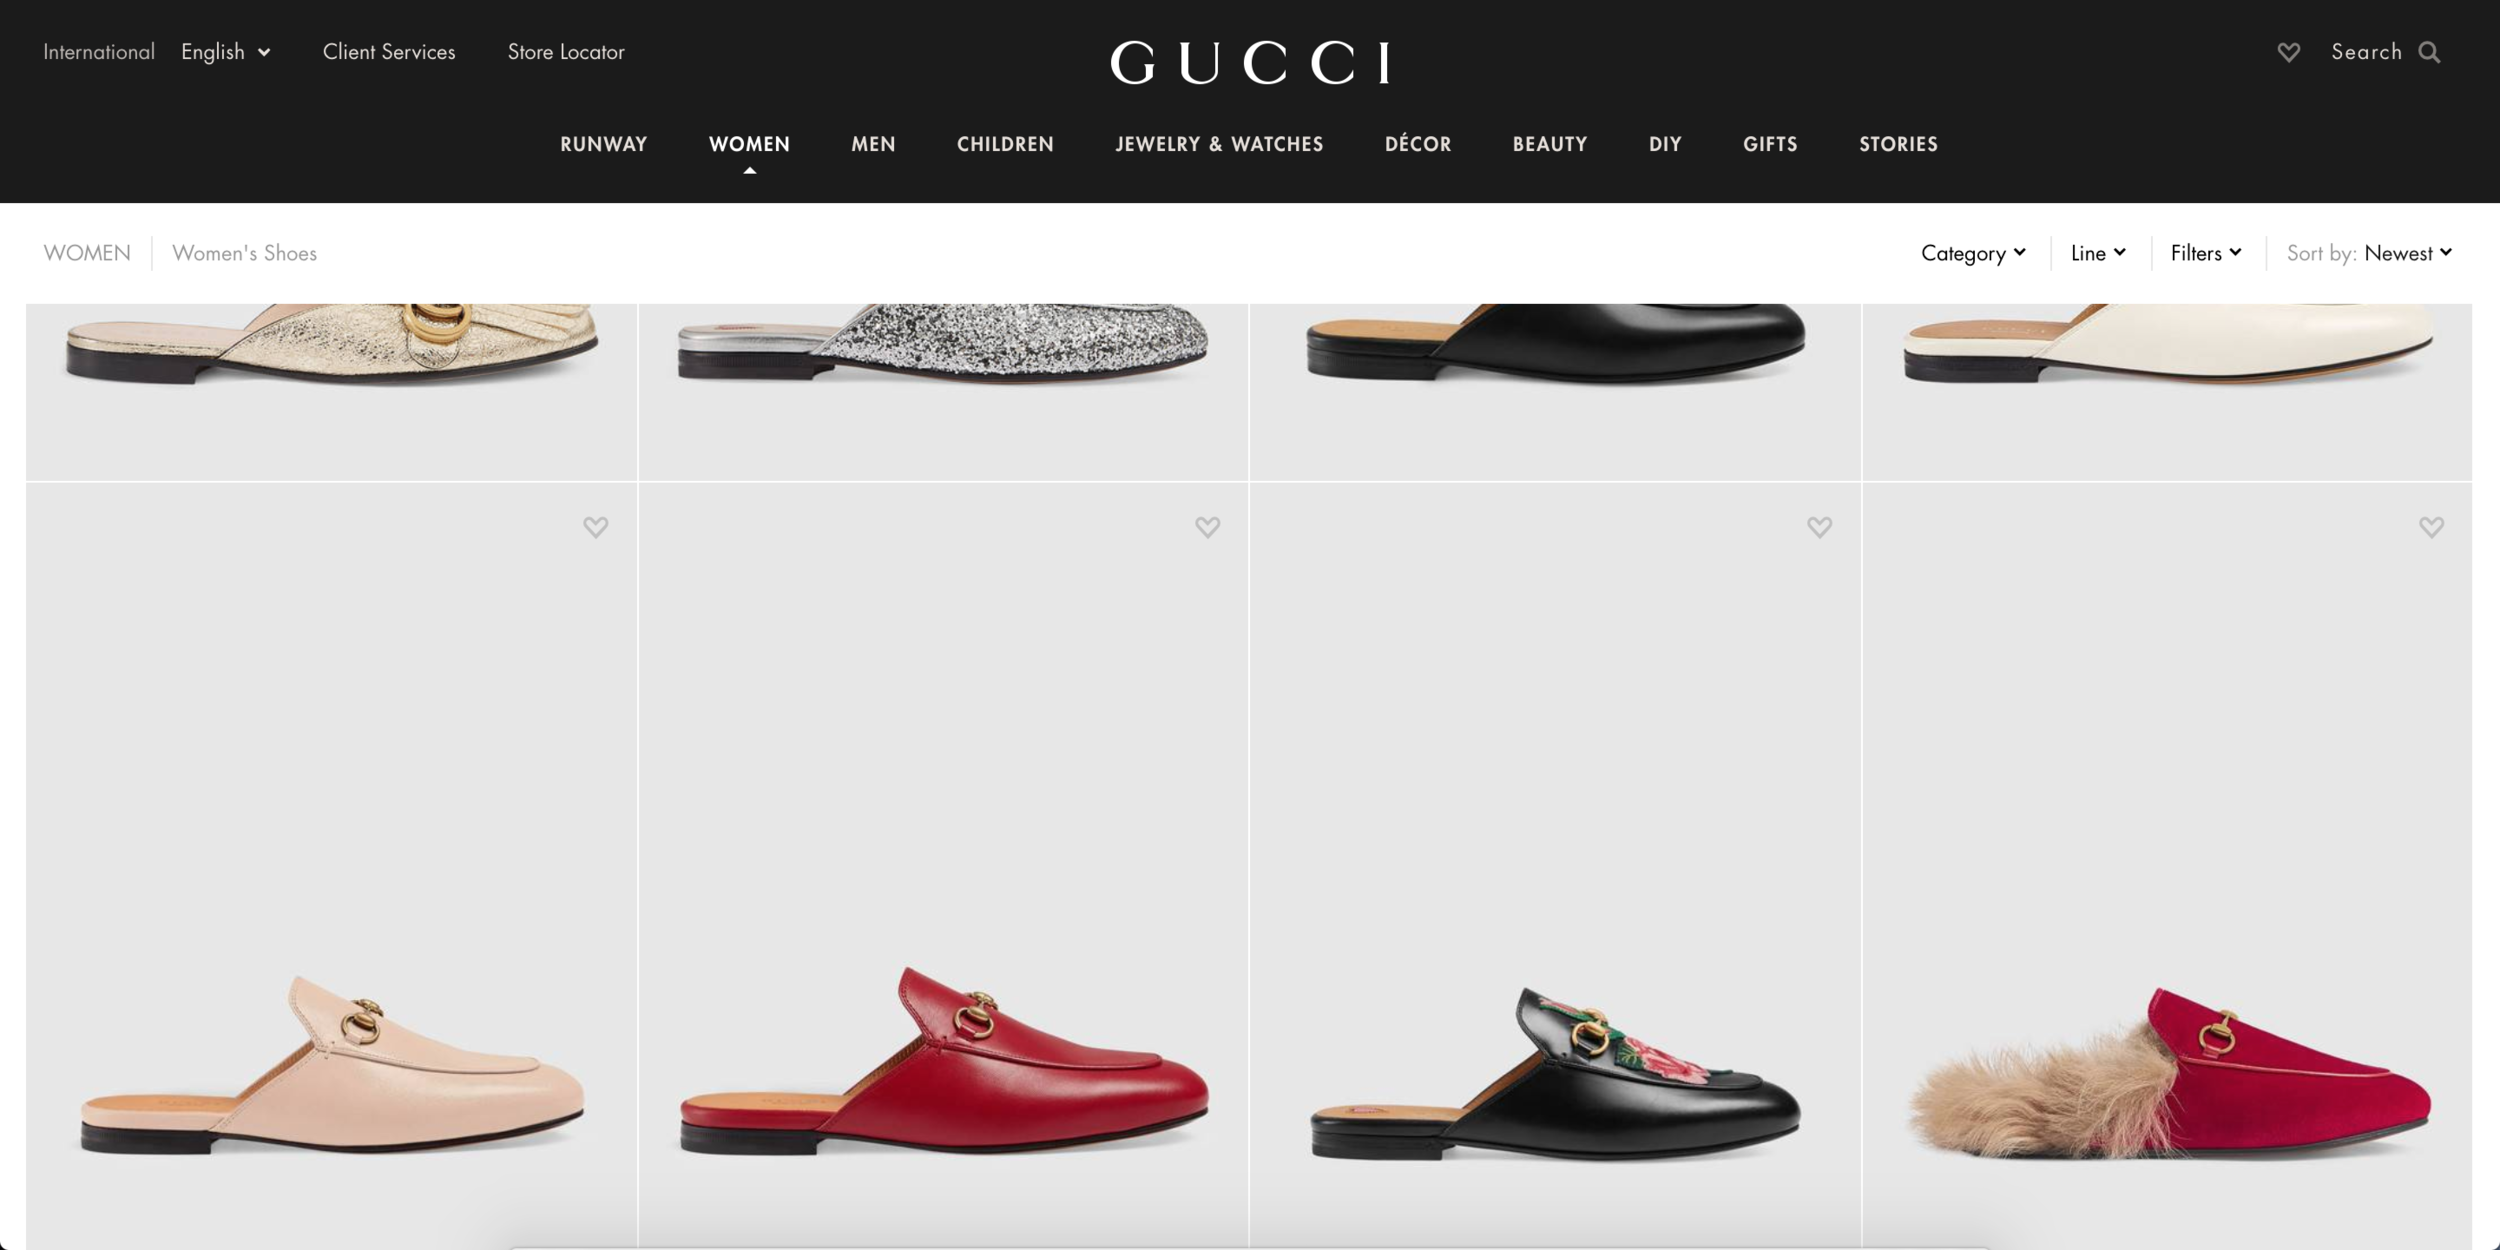 8444ec5bbf1 Most of the high fashion brands have mobile apps with a beautiful interface  and Gucci is one of them. Their shoes are very popular and often they have  a few ...